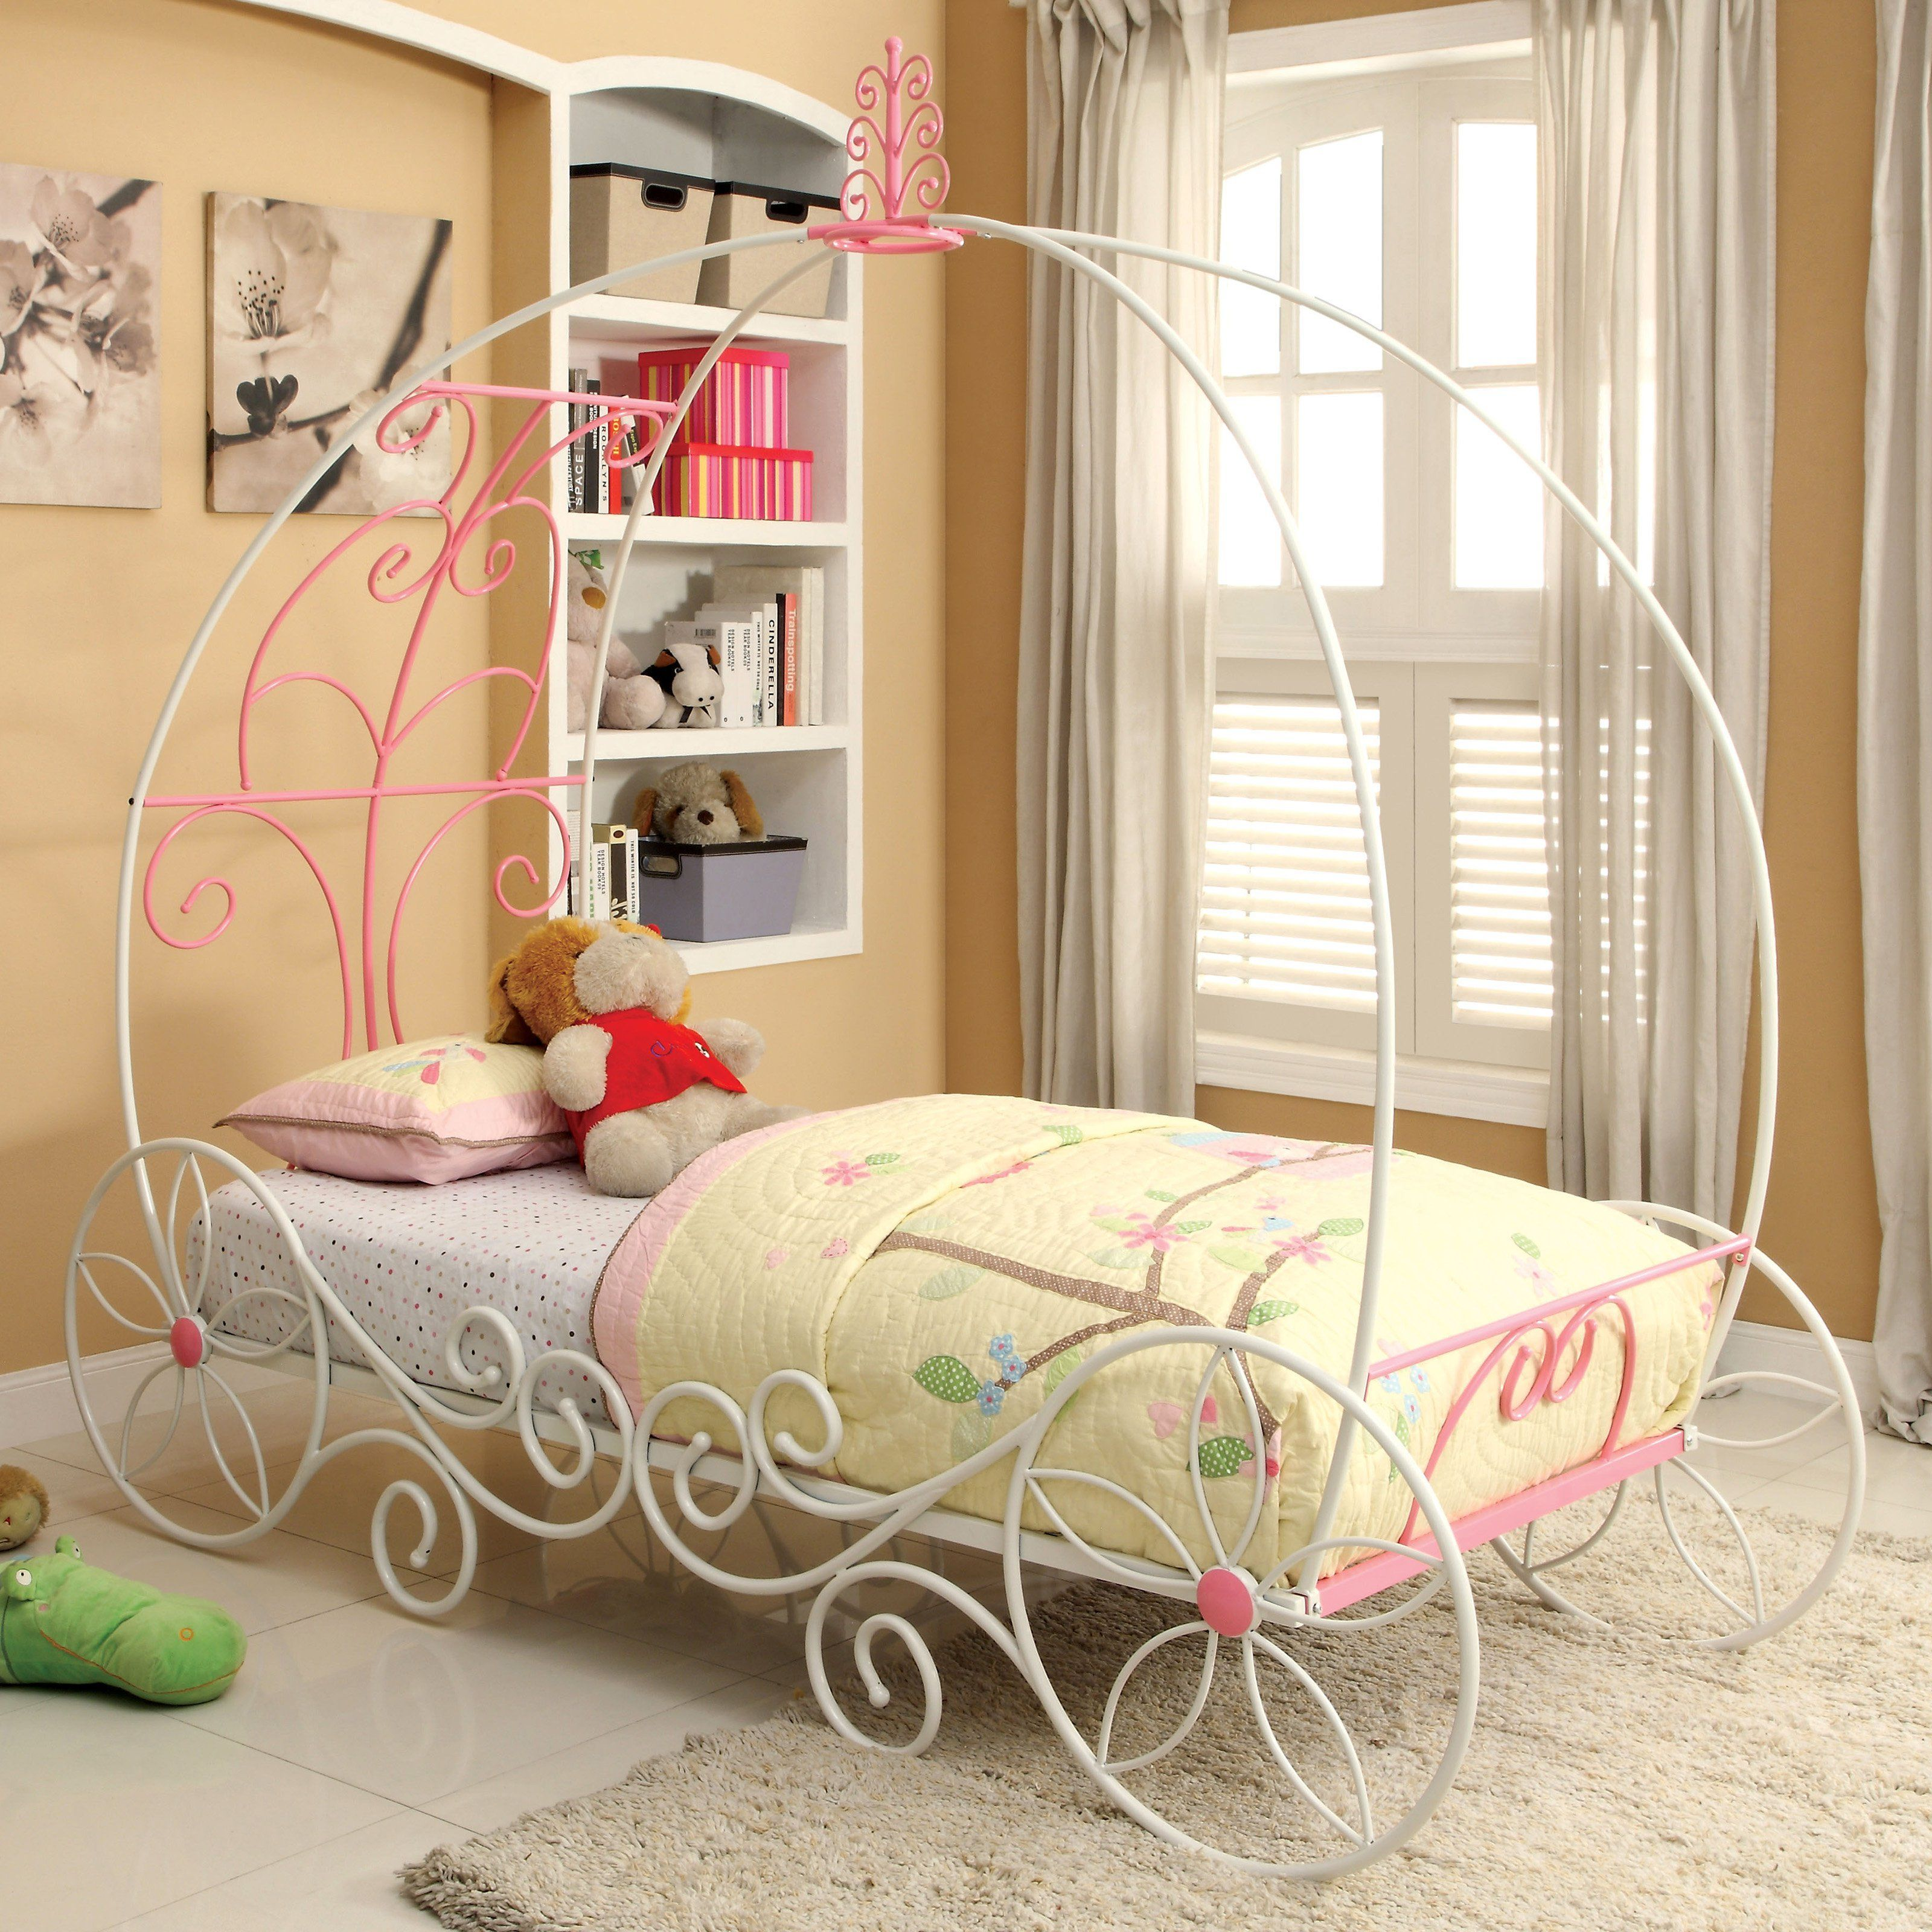 Furniture of America Charmante Carriage Bed Princess